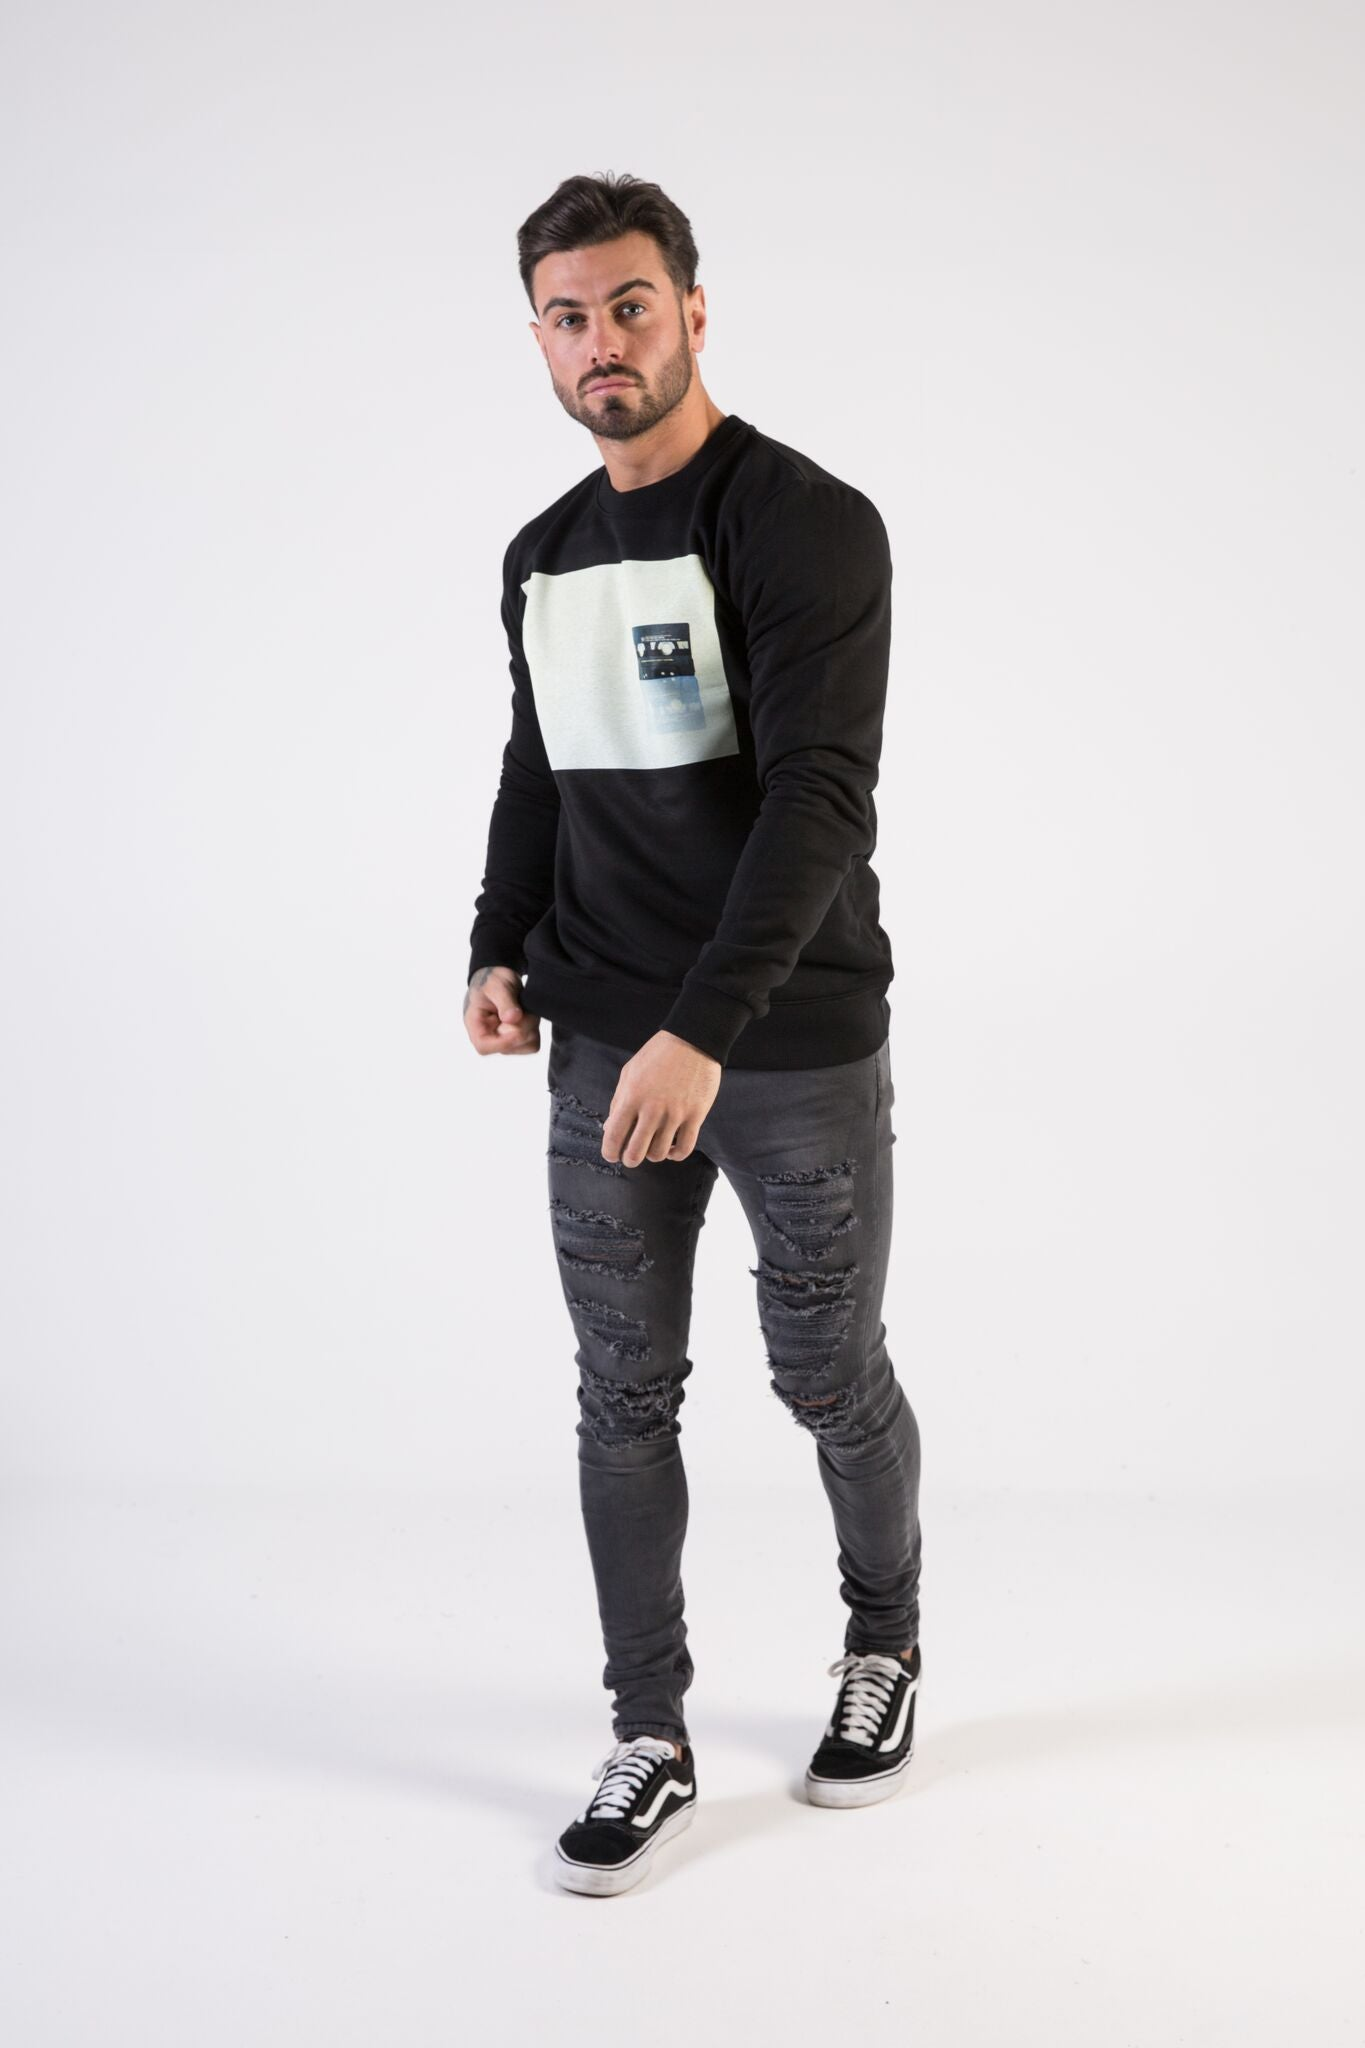 CASSETTE Sweatshirt - HÖRFA is a men's global fashion brand that provides products such as Fashionable Watches, Wallets, Sunglasses, Belts, Beard and Male Grooming Products